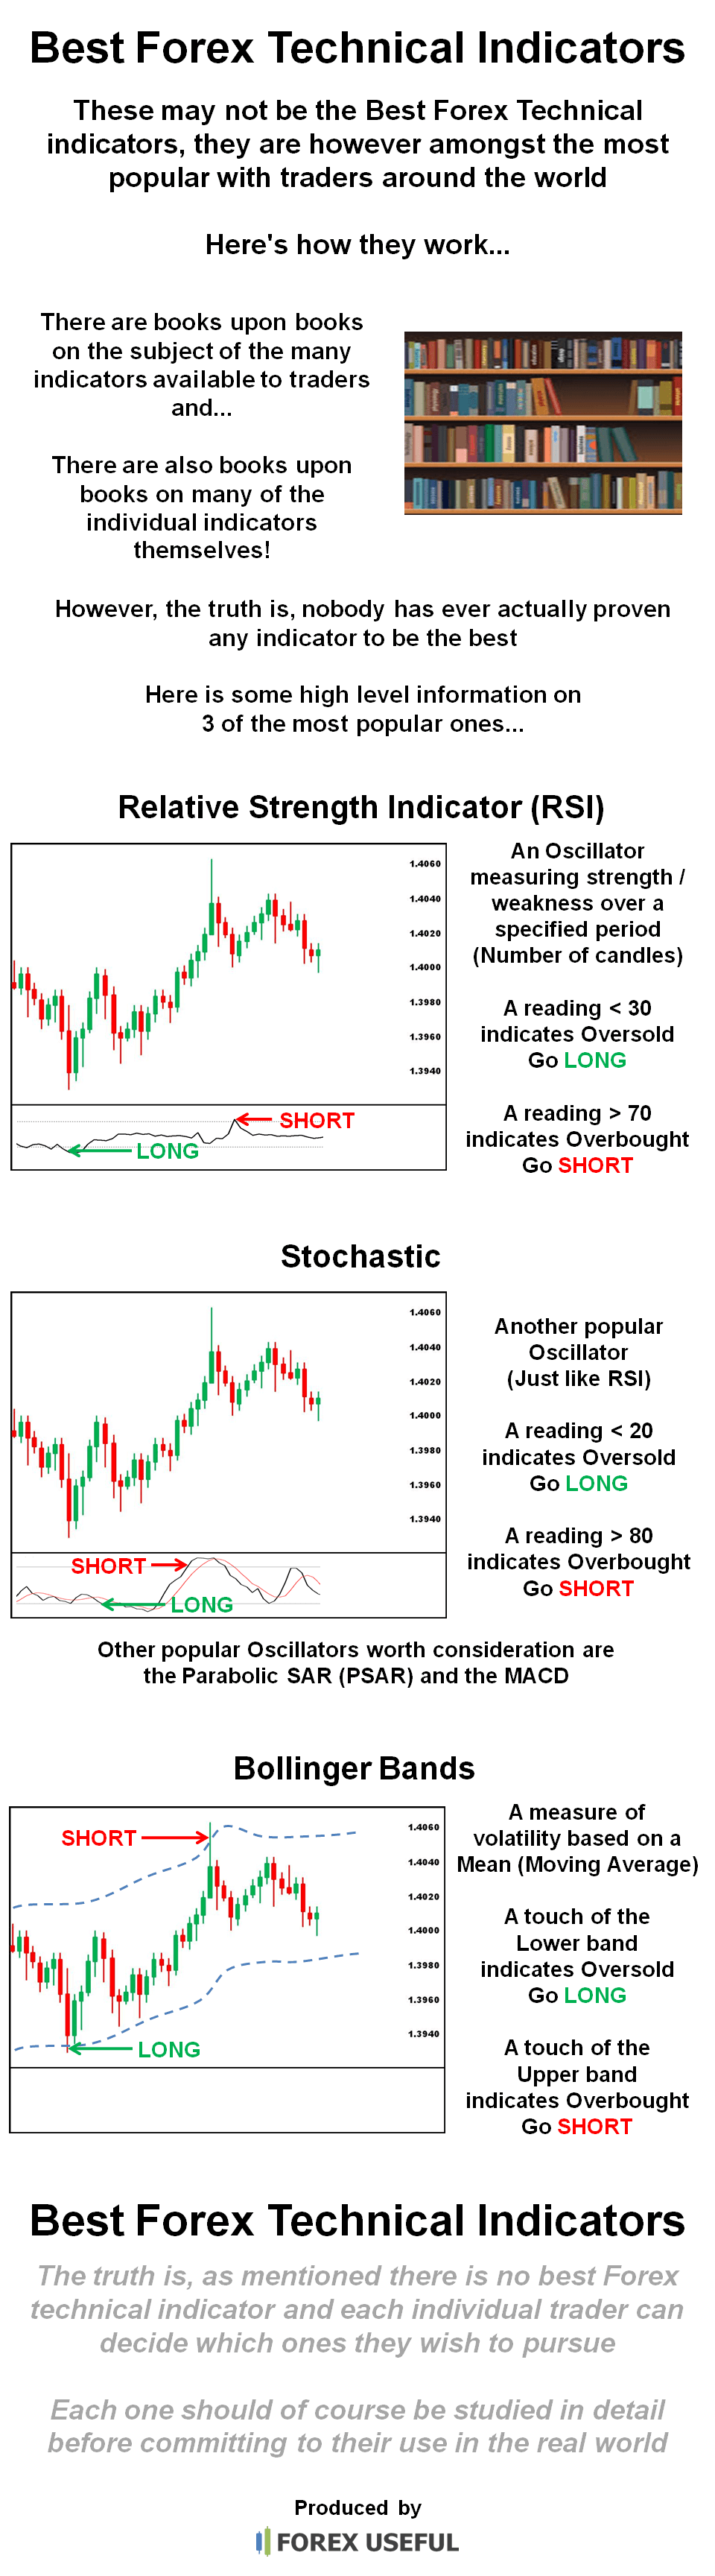 Indicators made for forex